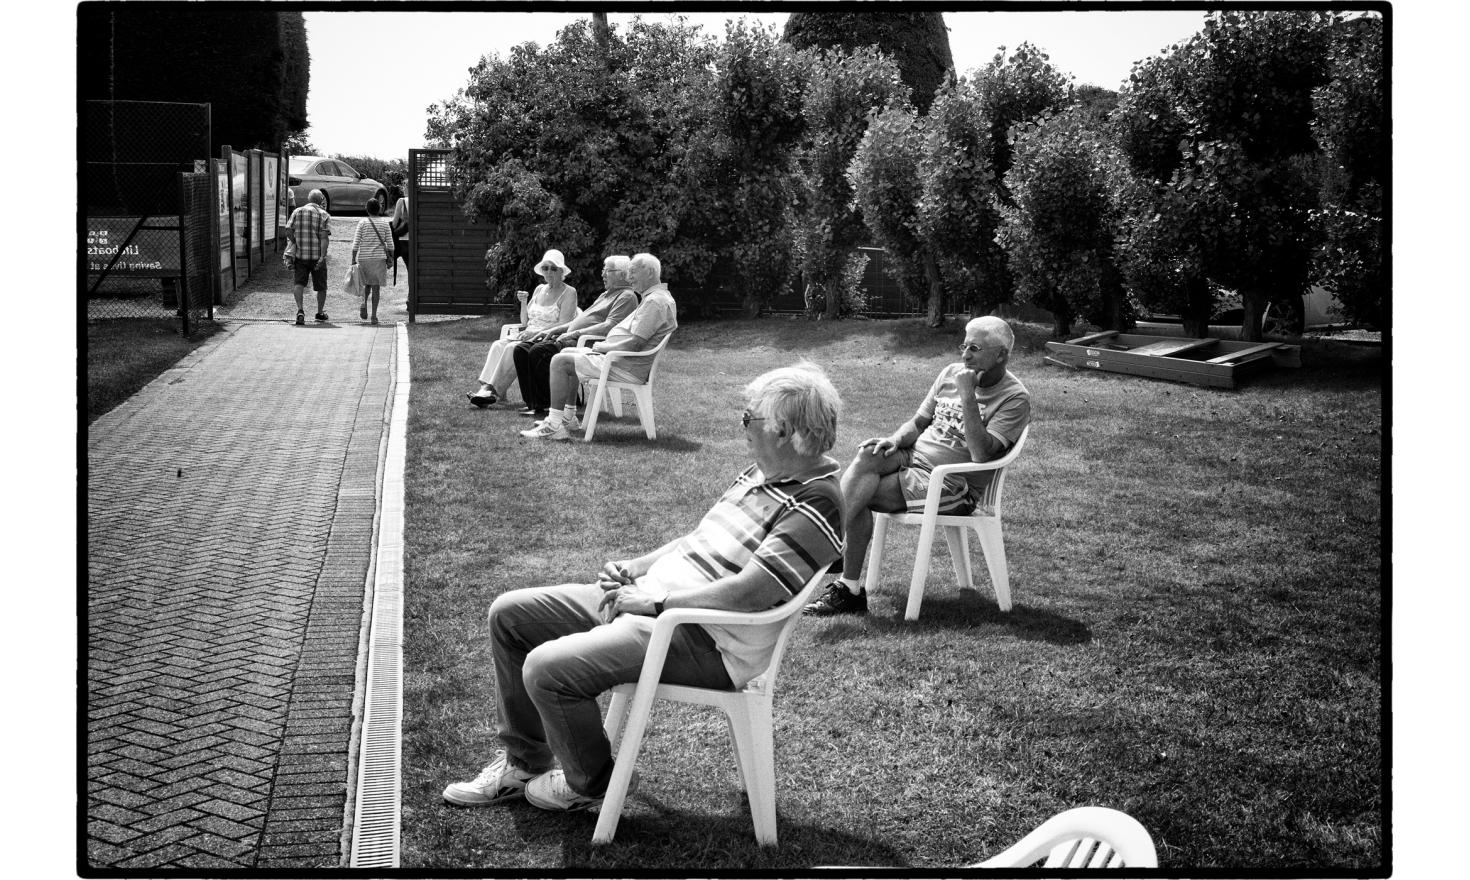 "Spectators at the senoir final, tennis tounament in frinton, a very fancy toxn near Clacton. The Trending district has voted at 65% for the""leave""the EU. Frinton, England. July 2016"